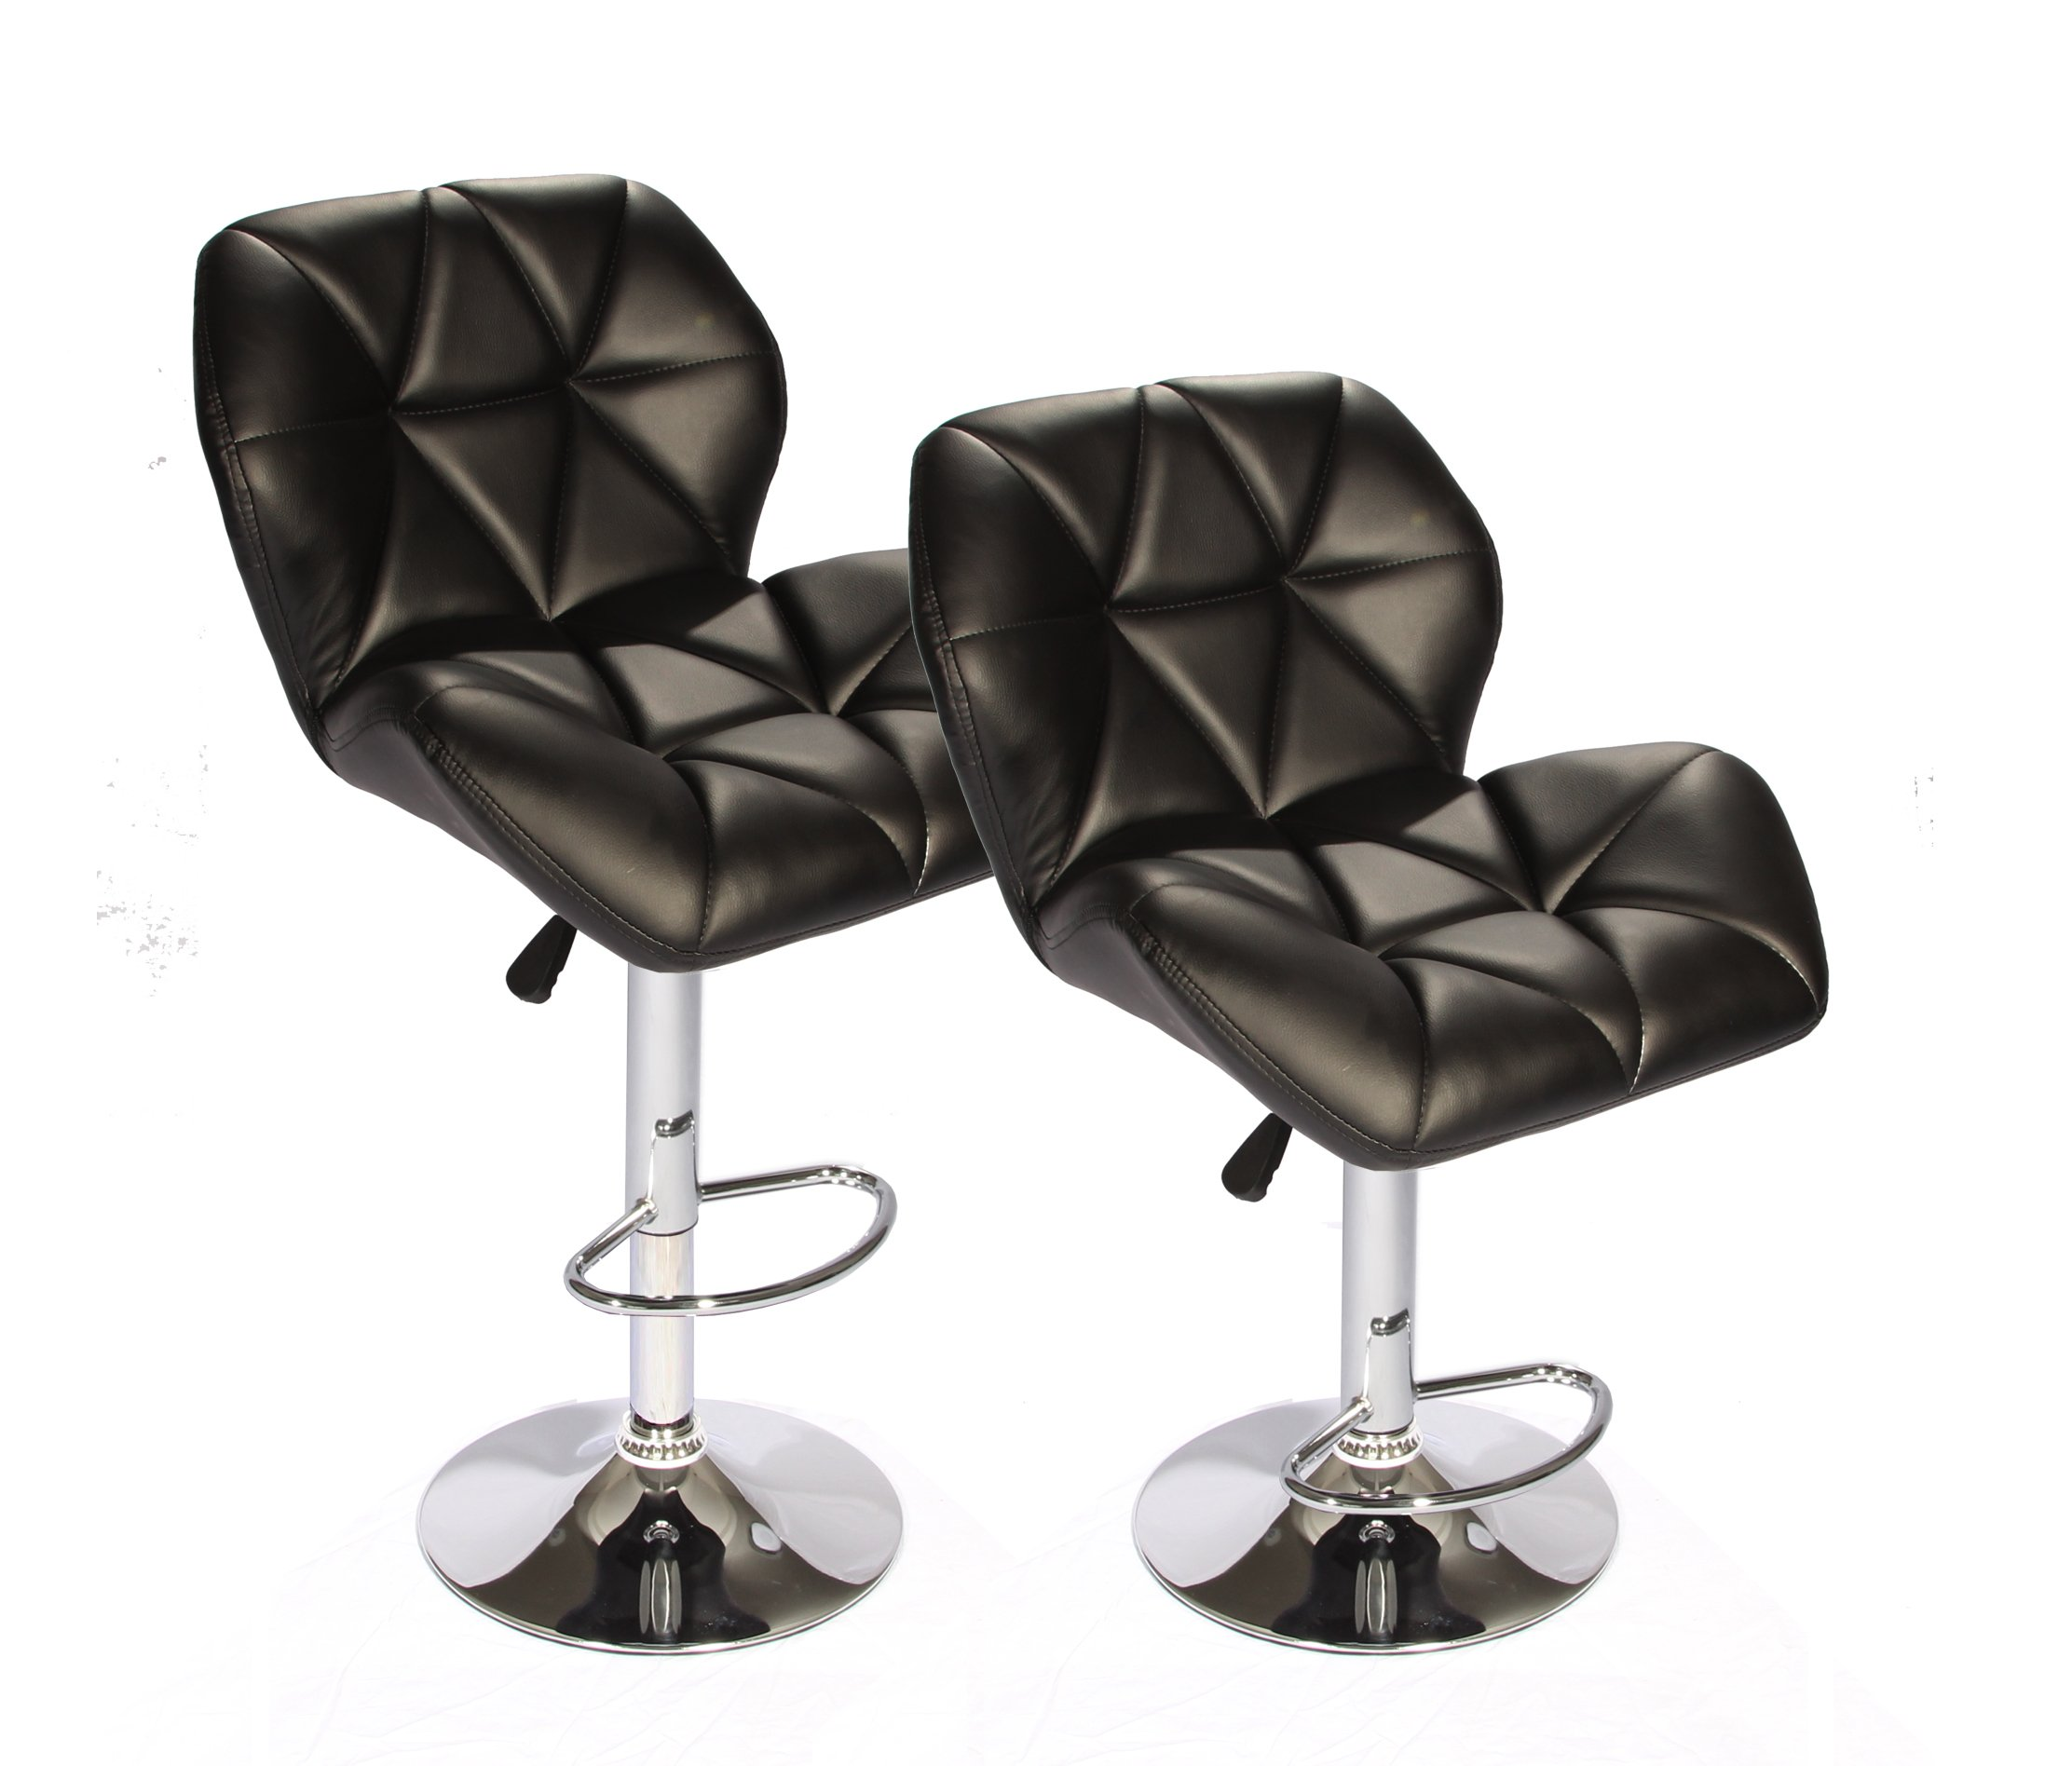 BestMassage Set Of 2 Adjustable Height Swivel Bar Stools w/Chrome Base Counter Height Stool